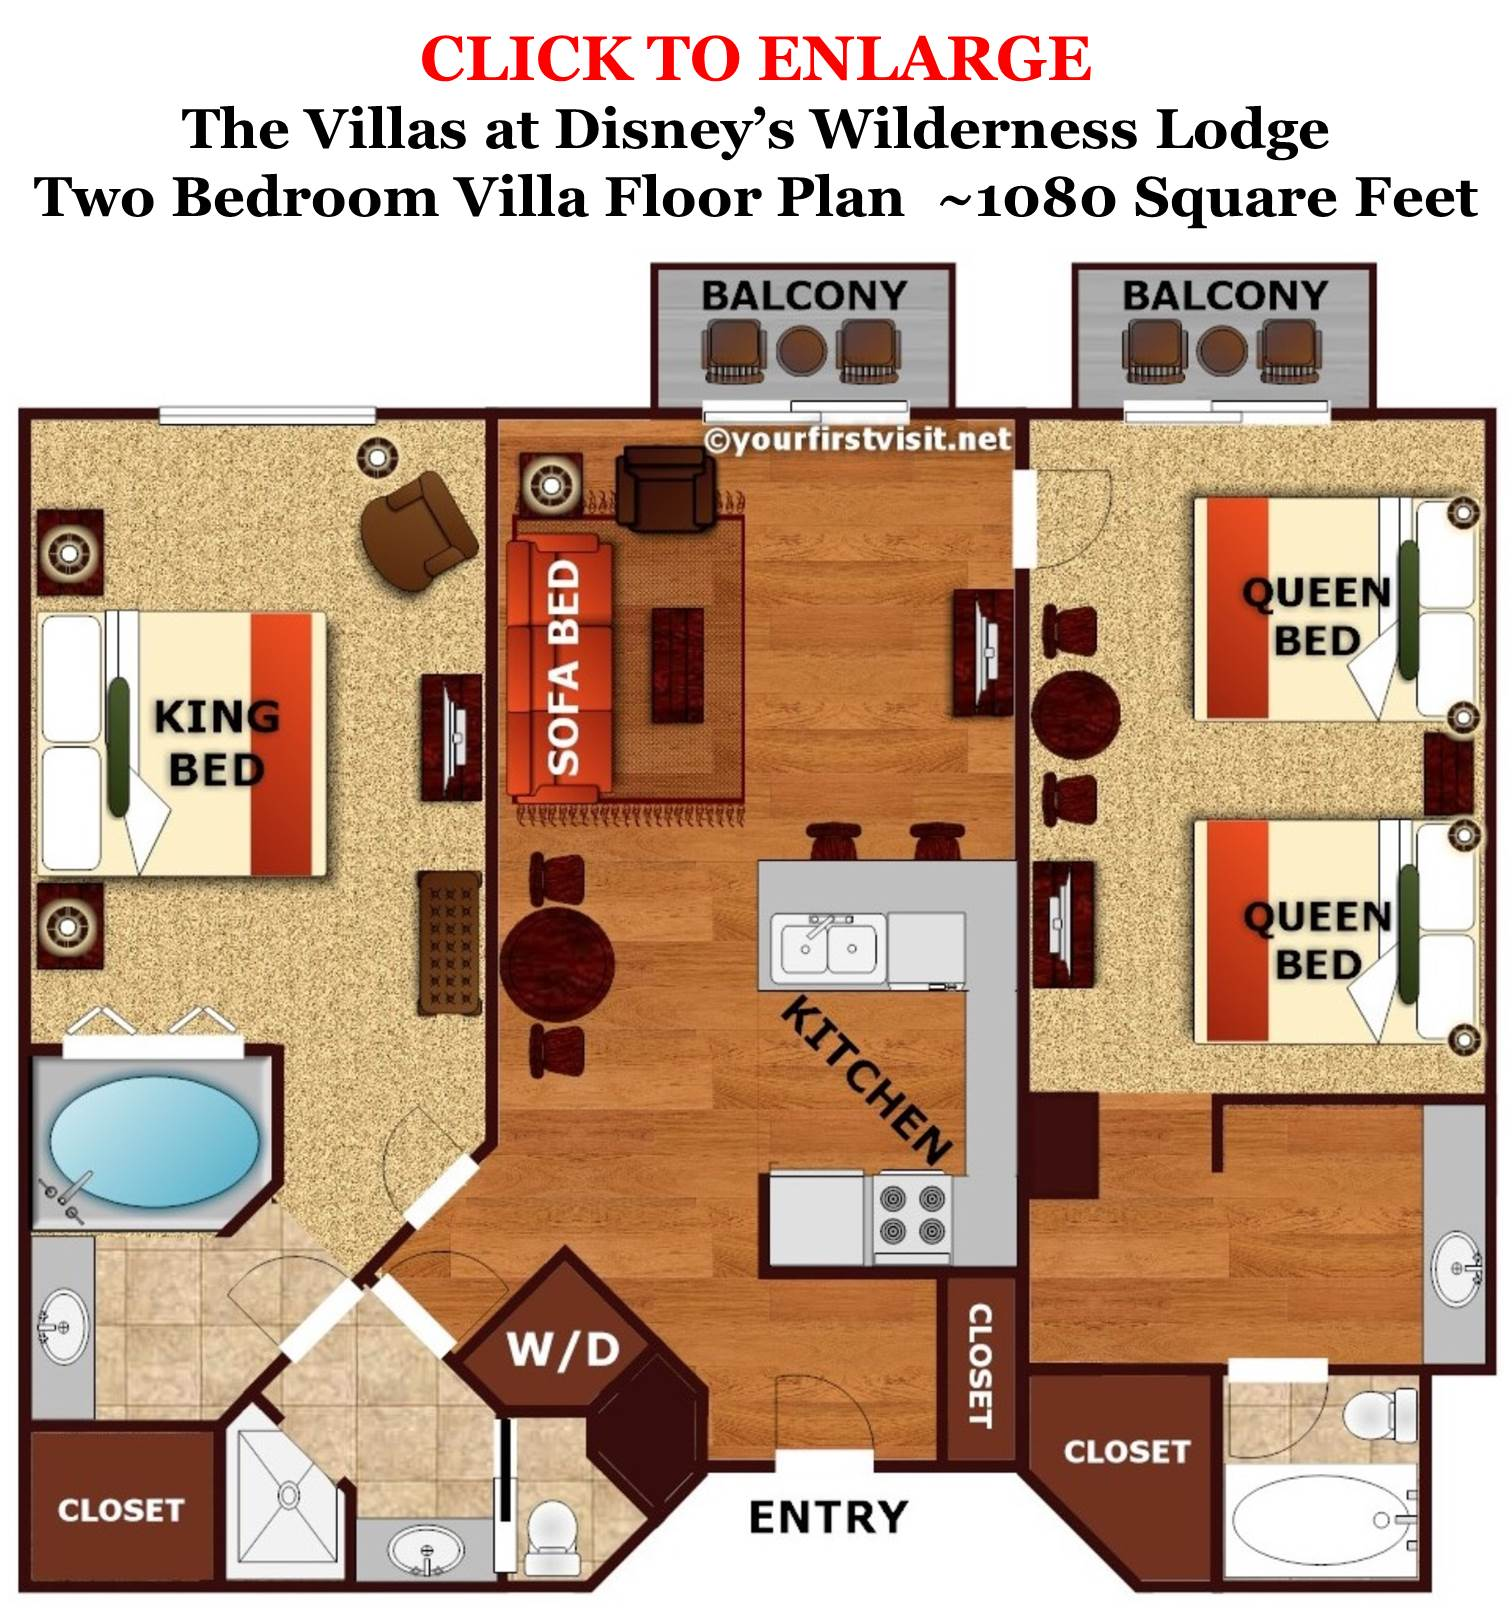 Floor Plan Two Bedroom Villa The Villas at Disney's Wilderness Lodge from yourfirstvisit.net